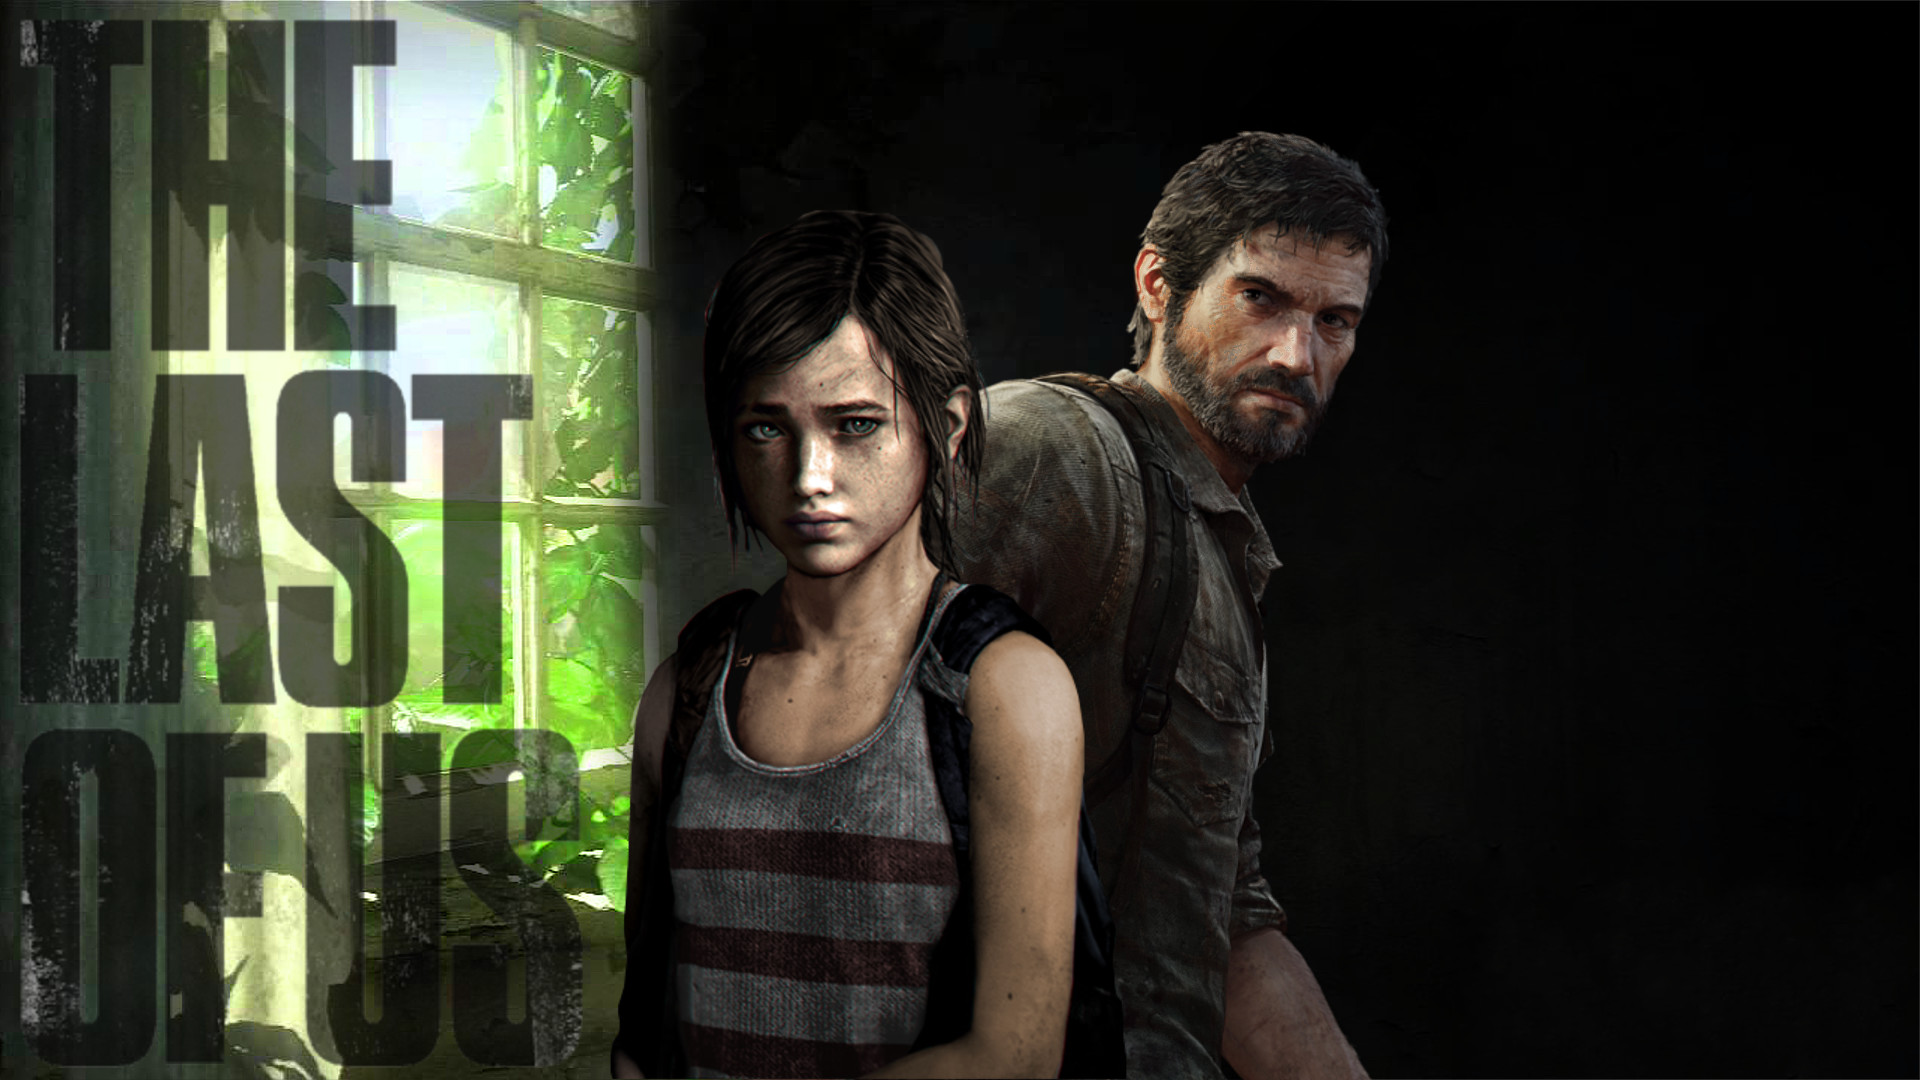 The Last Of Us Wallpaper Hd Posted By Christopher Simpson